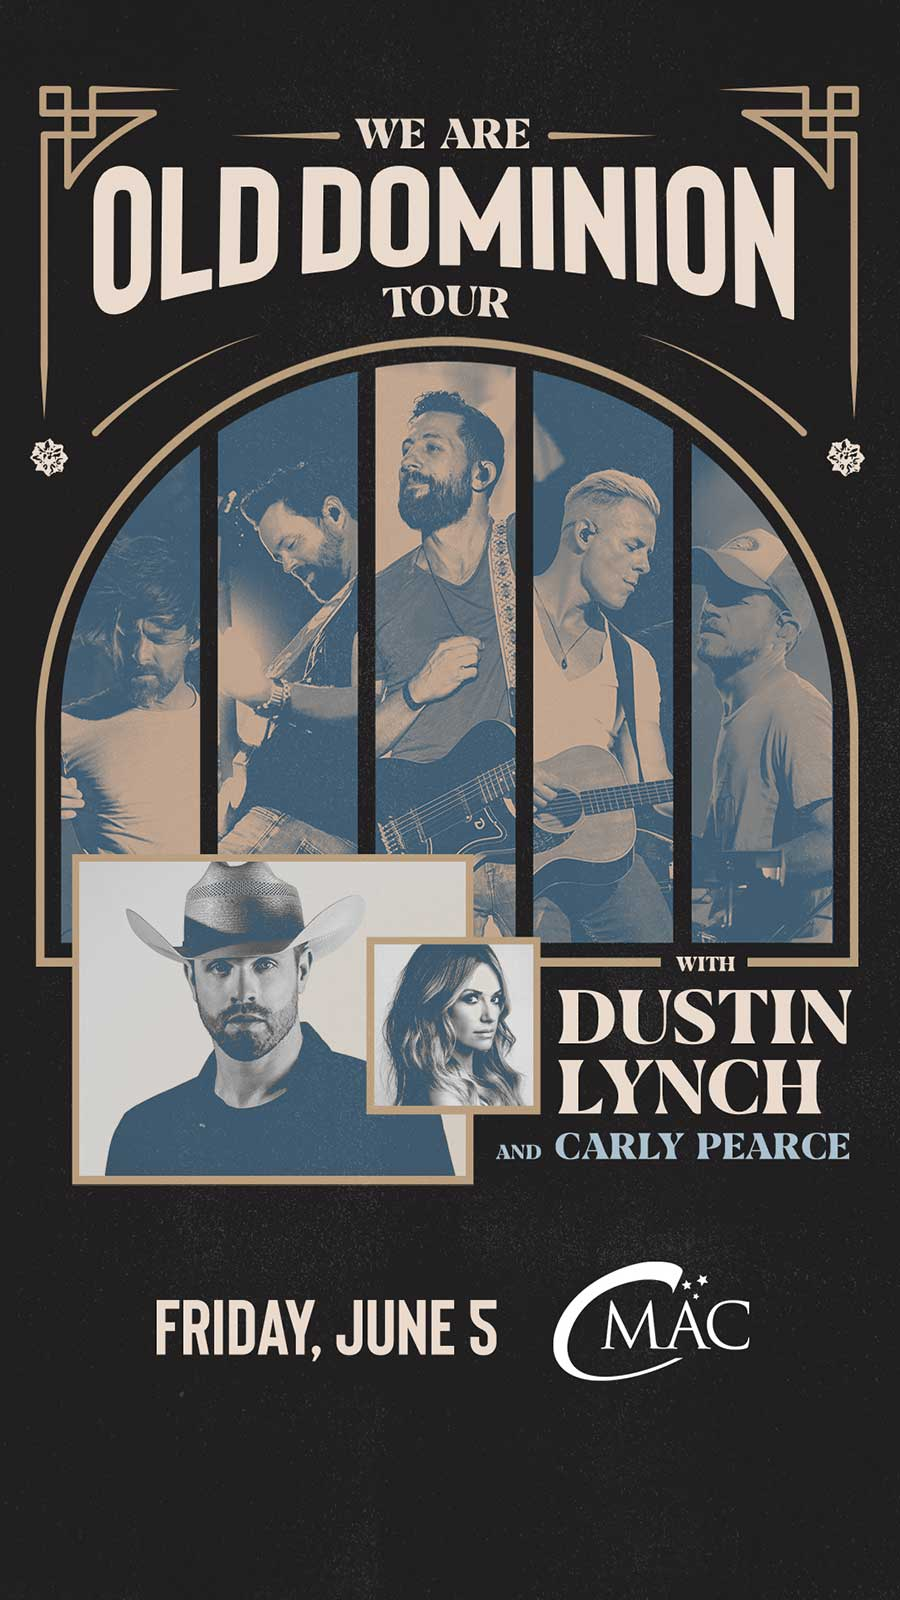 Old Dominion with Dustin Lunch and Carly Pearce at CMAC